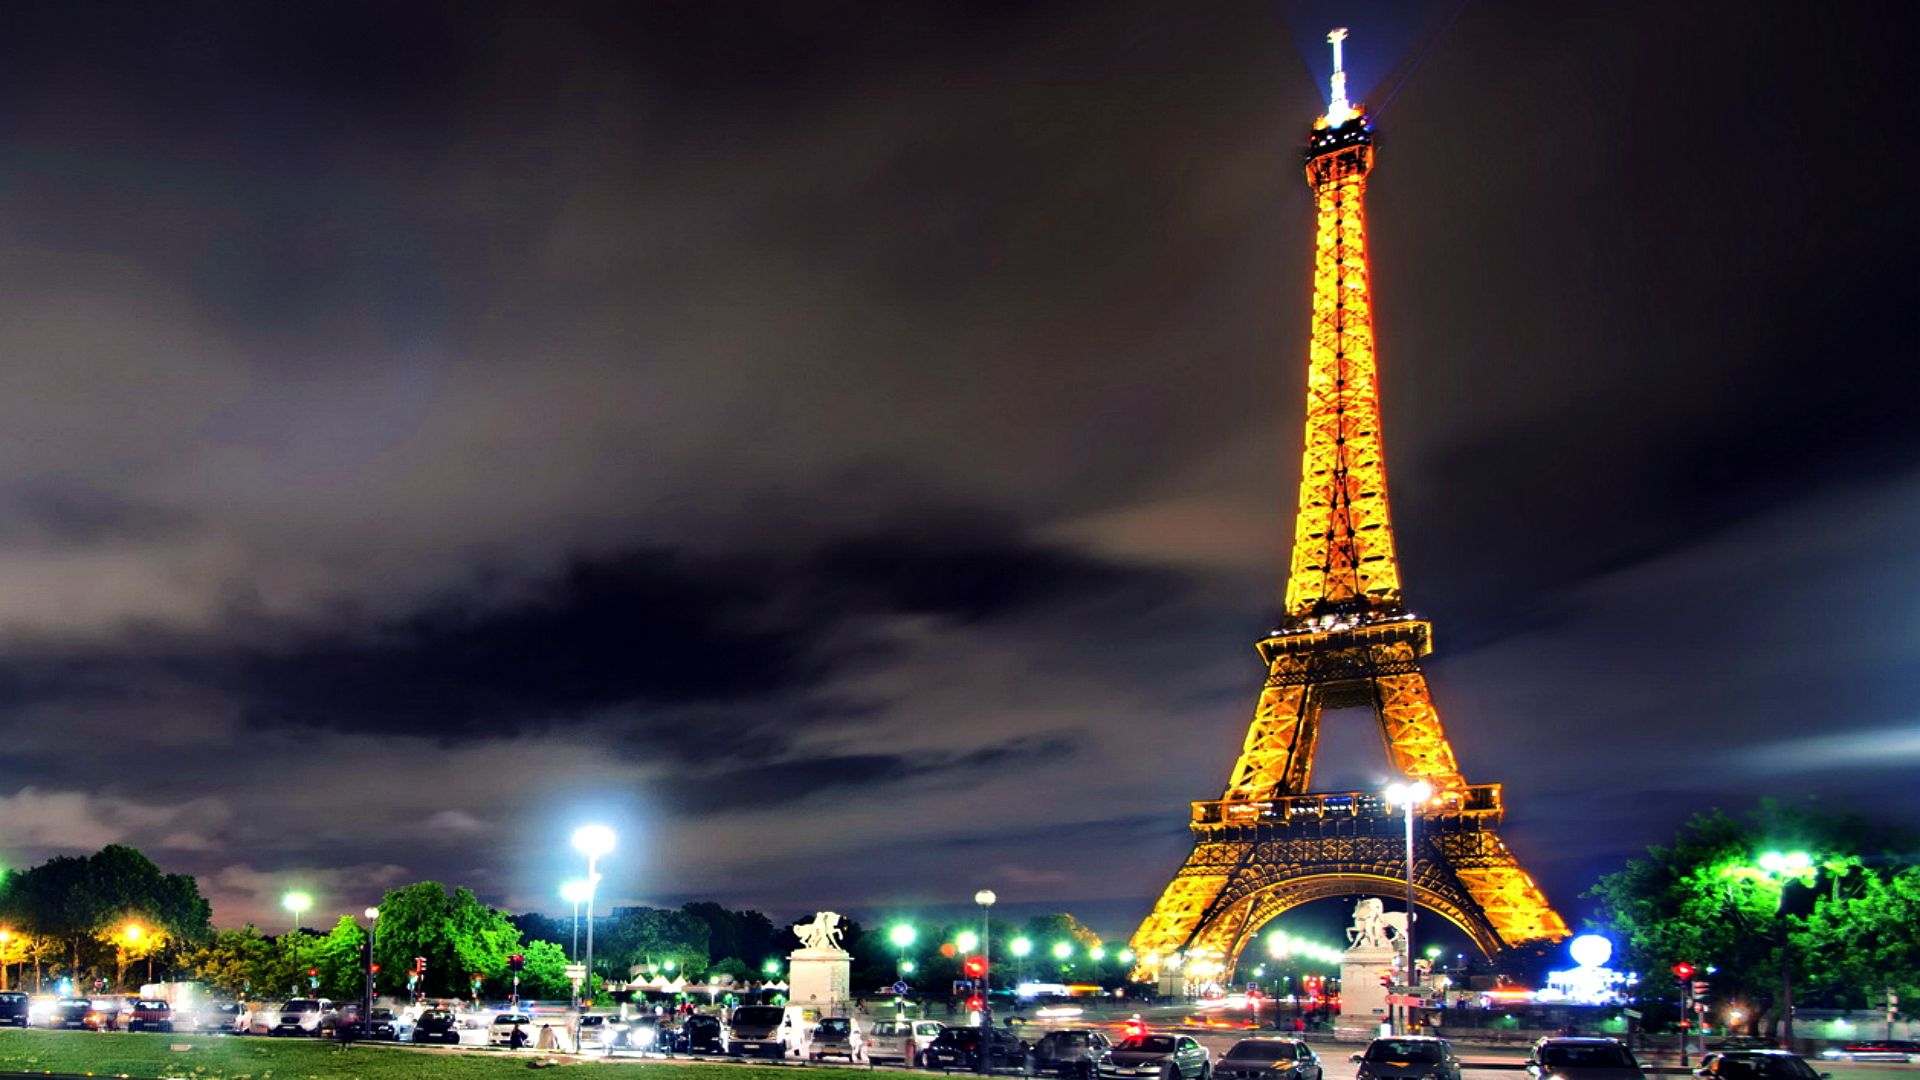 Eiffel Tower HD Wallpaper 2015